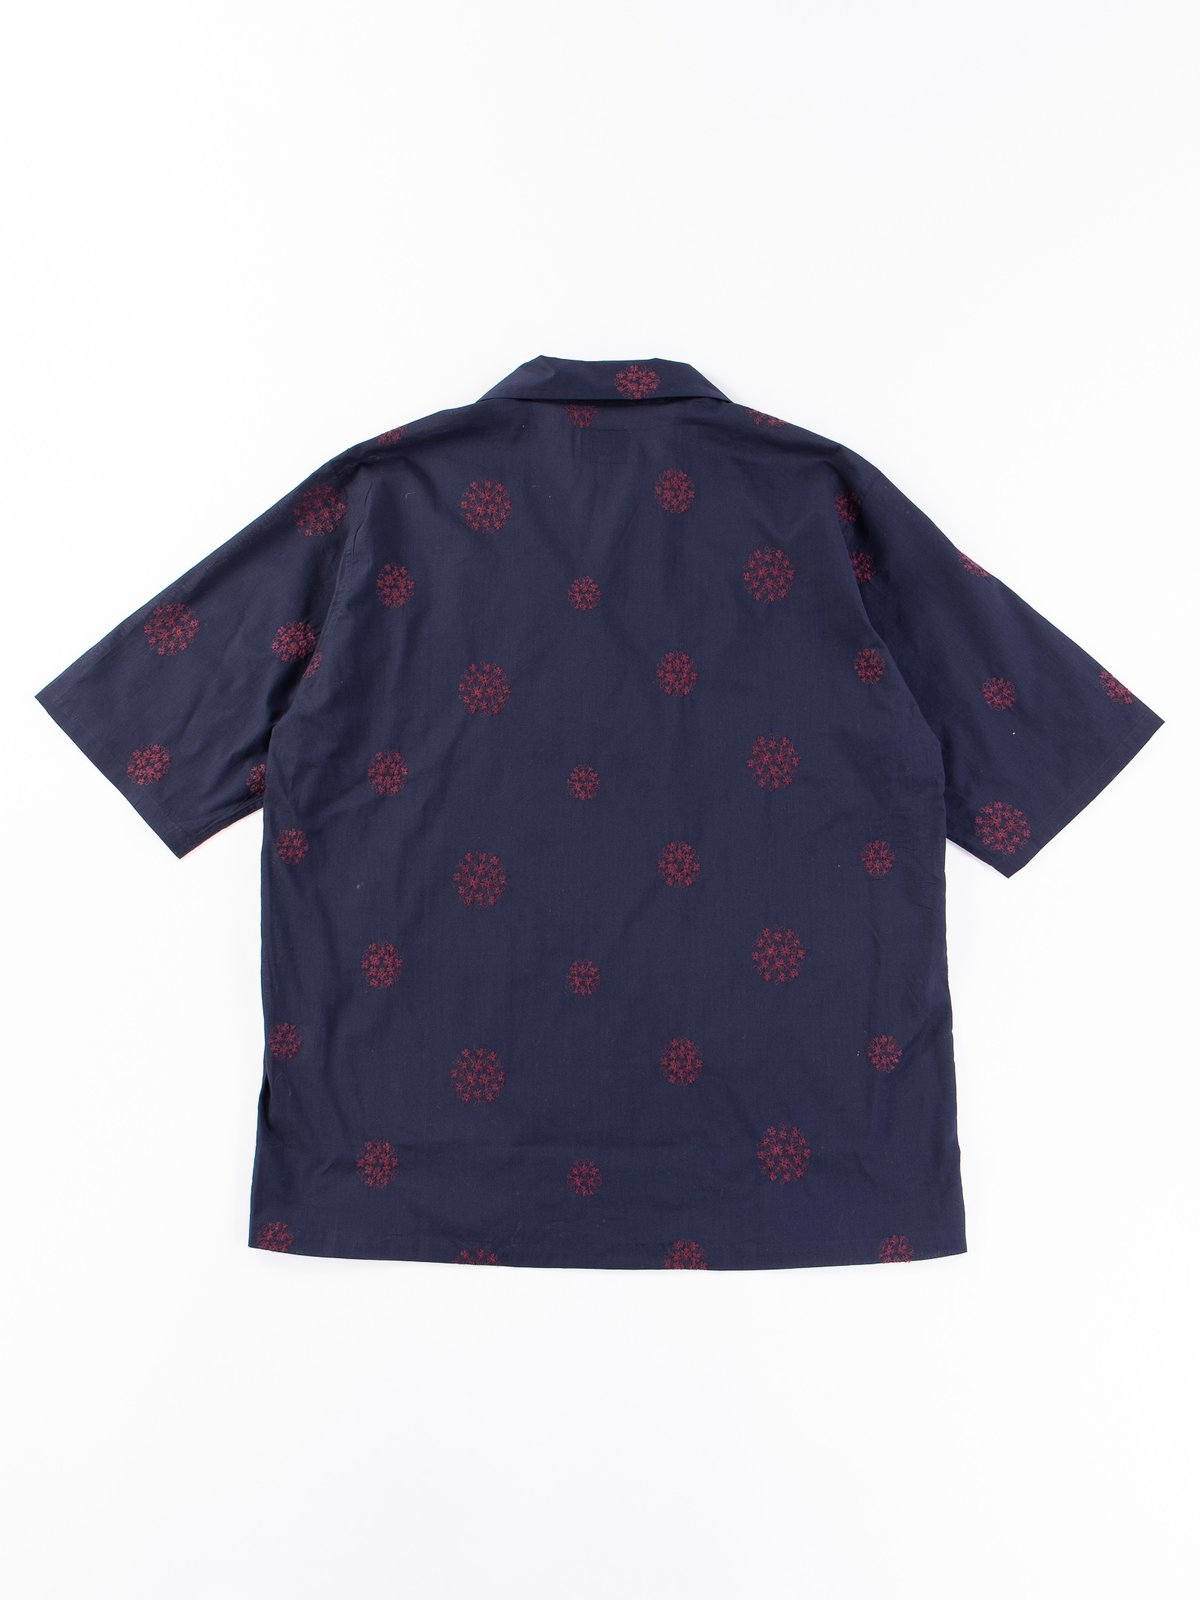 Navy Floral Dot Embroidered Cabana Shirt - Image 4